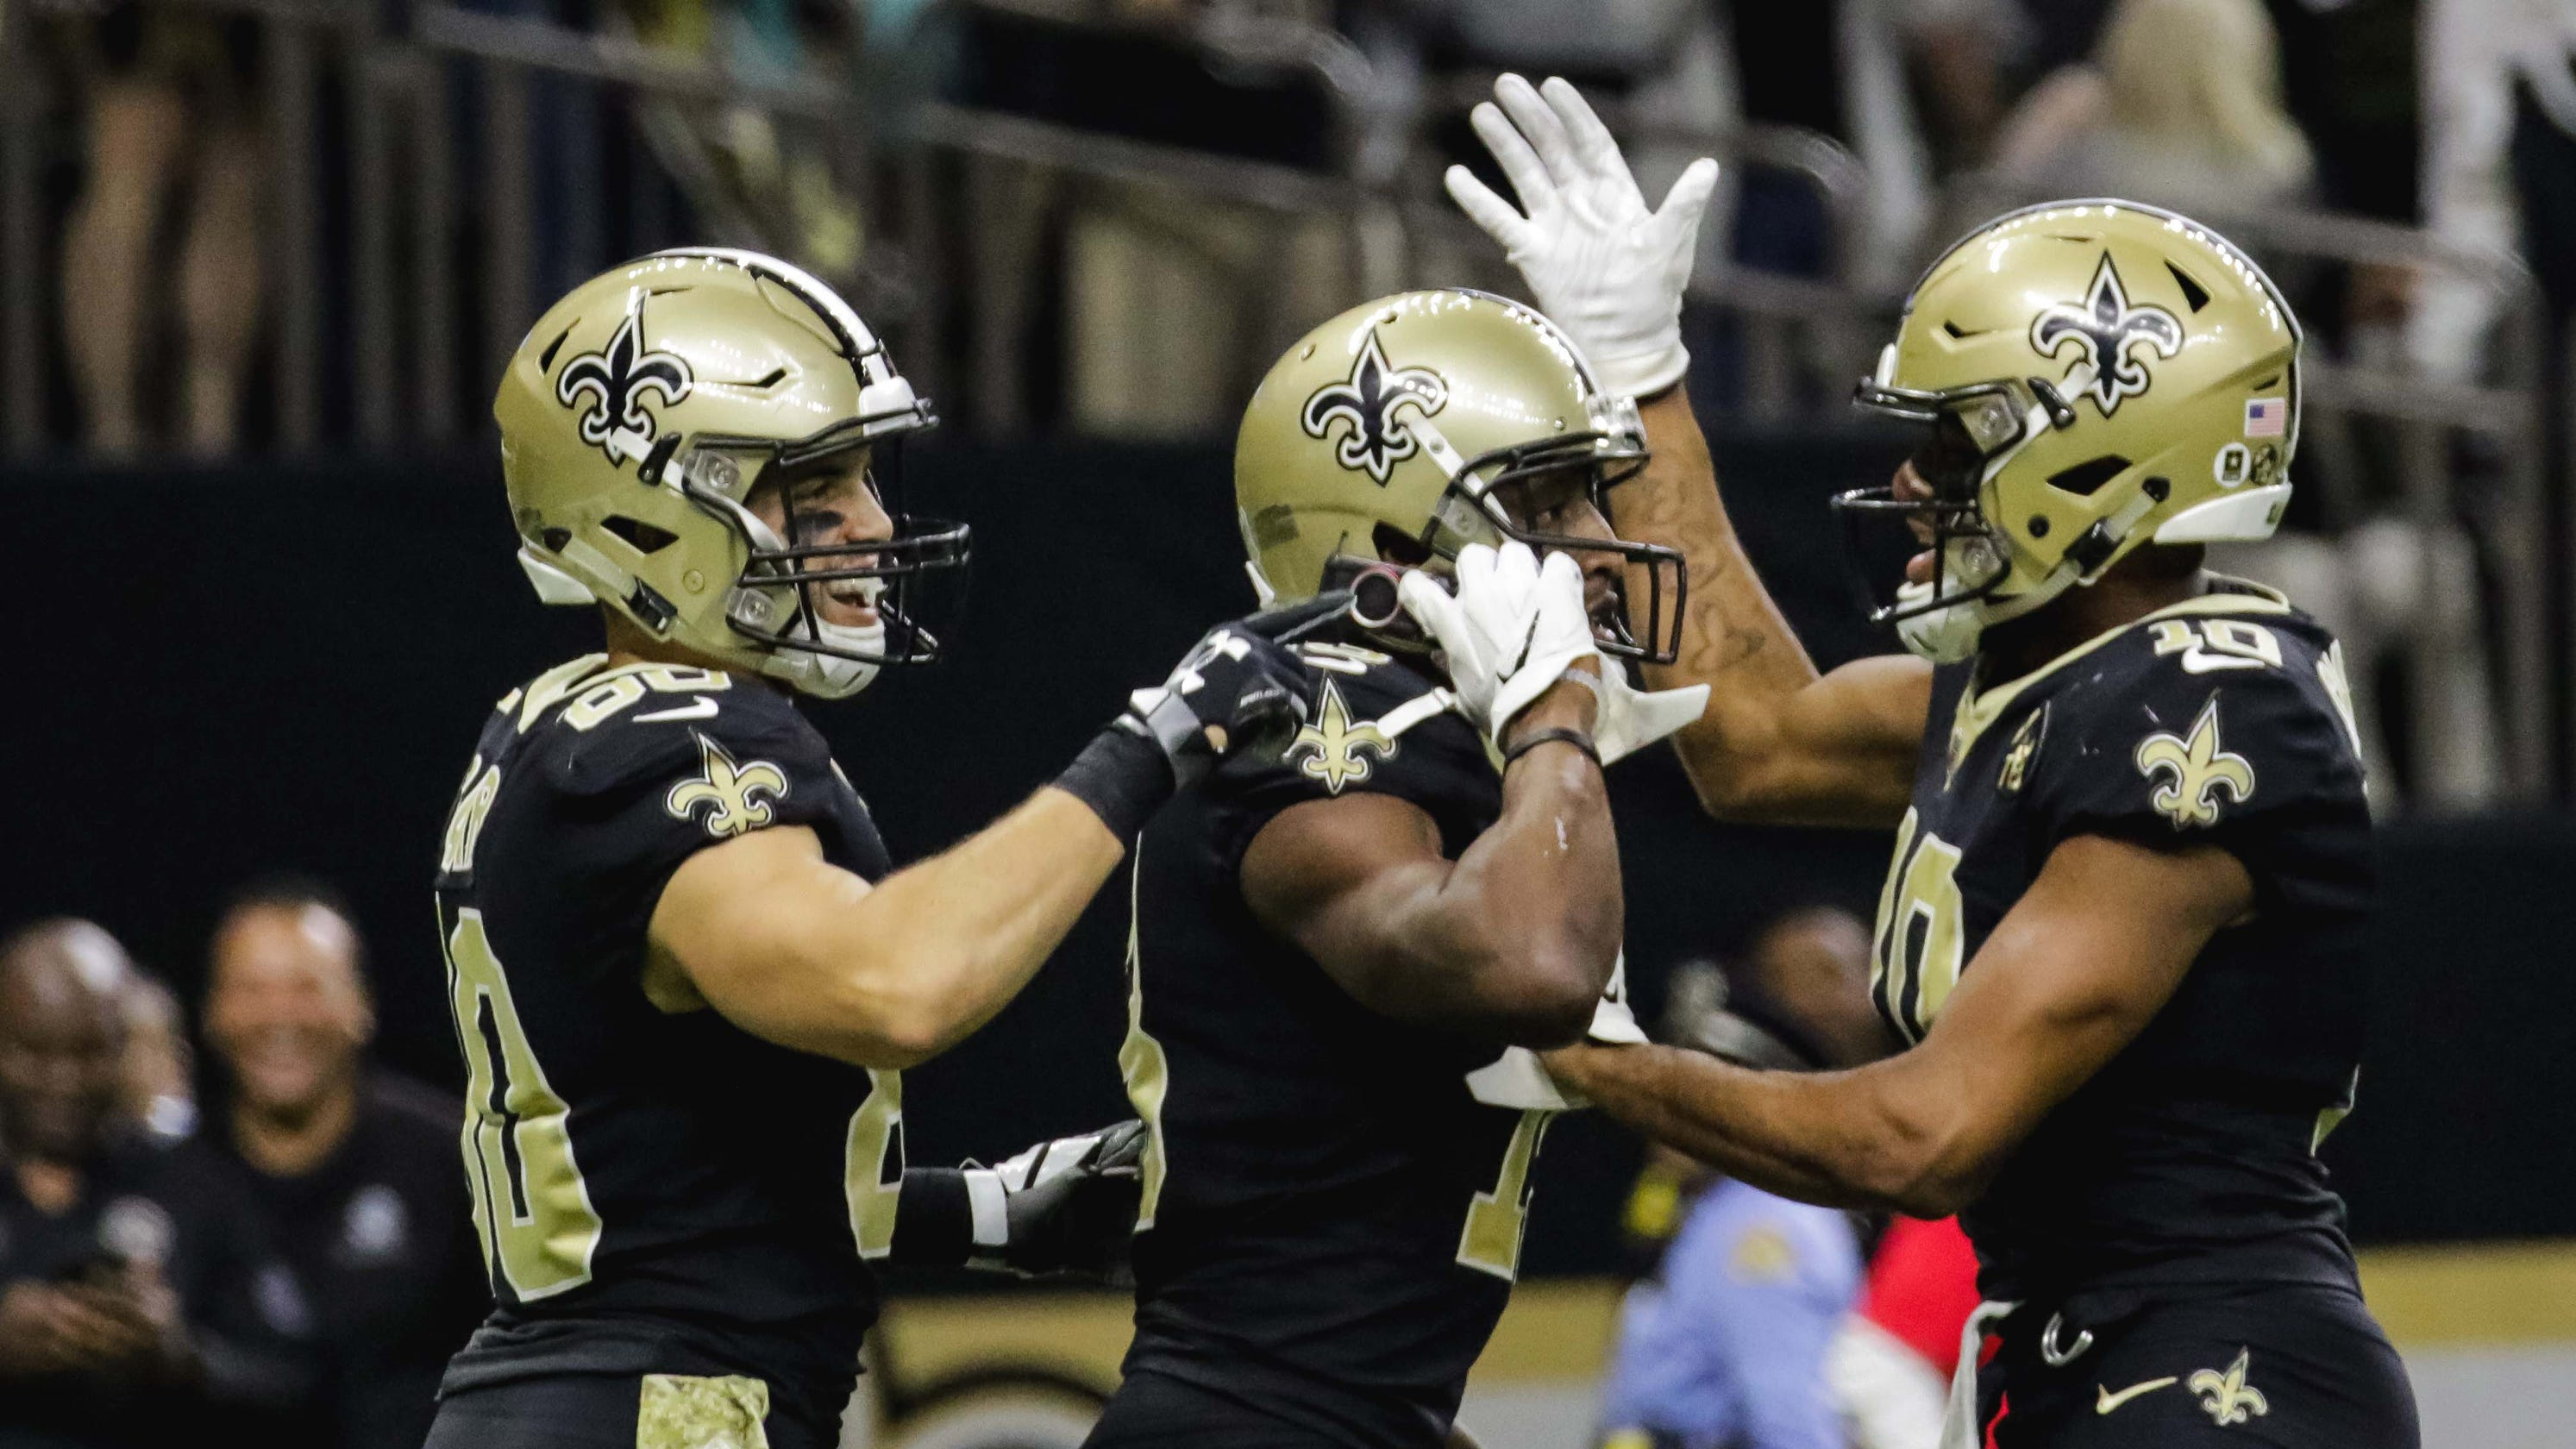 New Orleans Saints are NFC s top threat after beating Los Angeles Rams a860cbe4d